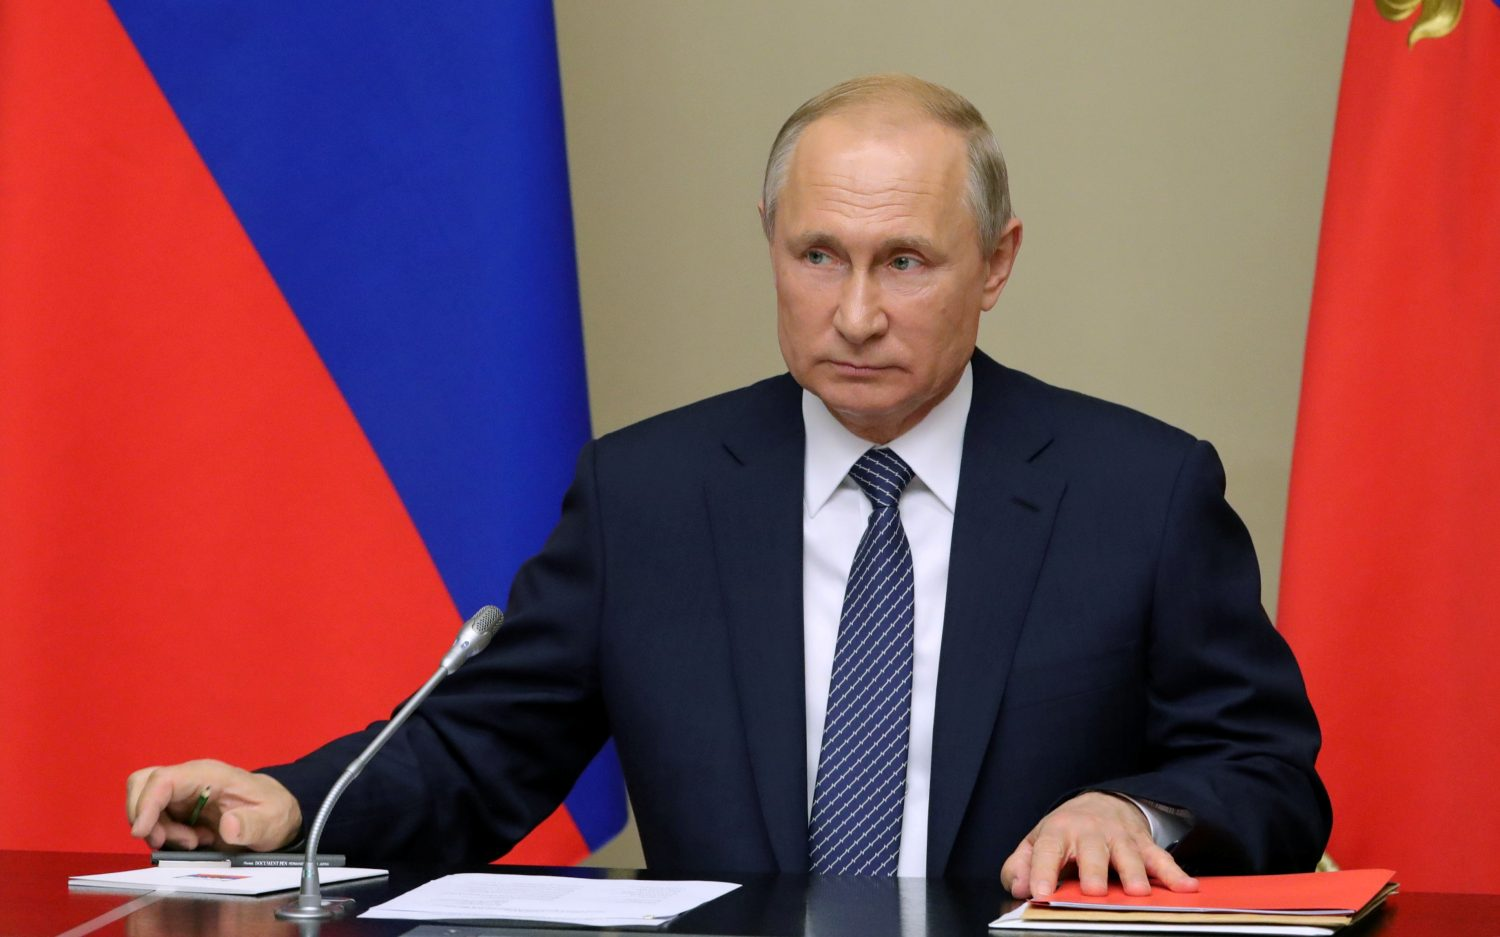 Russian President Vladimir Putin chairs a meeting with members of the Security Council at the Novo-Ogaryovo state residence outside Moscow, Russia August 5, 2019. Sputnik/Mikhail Klimentyev/Kremlin via REUTERS